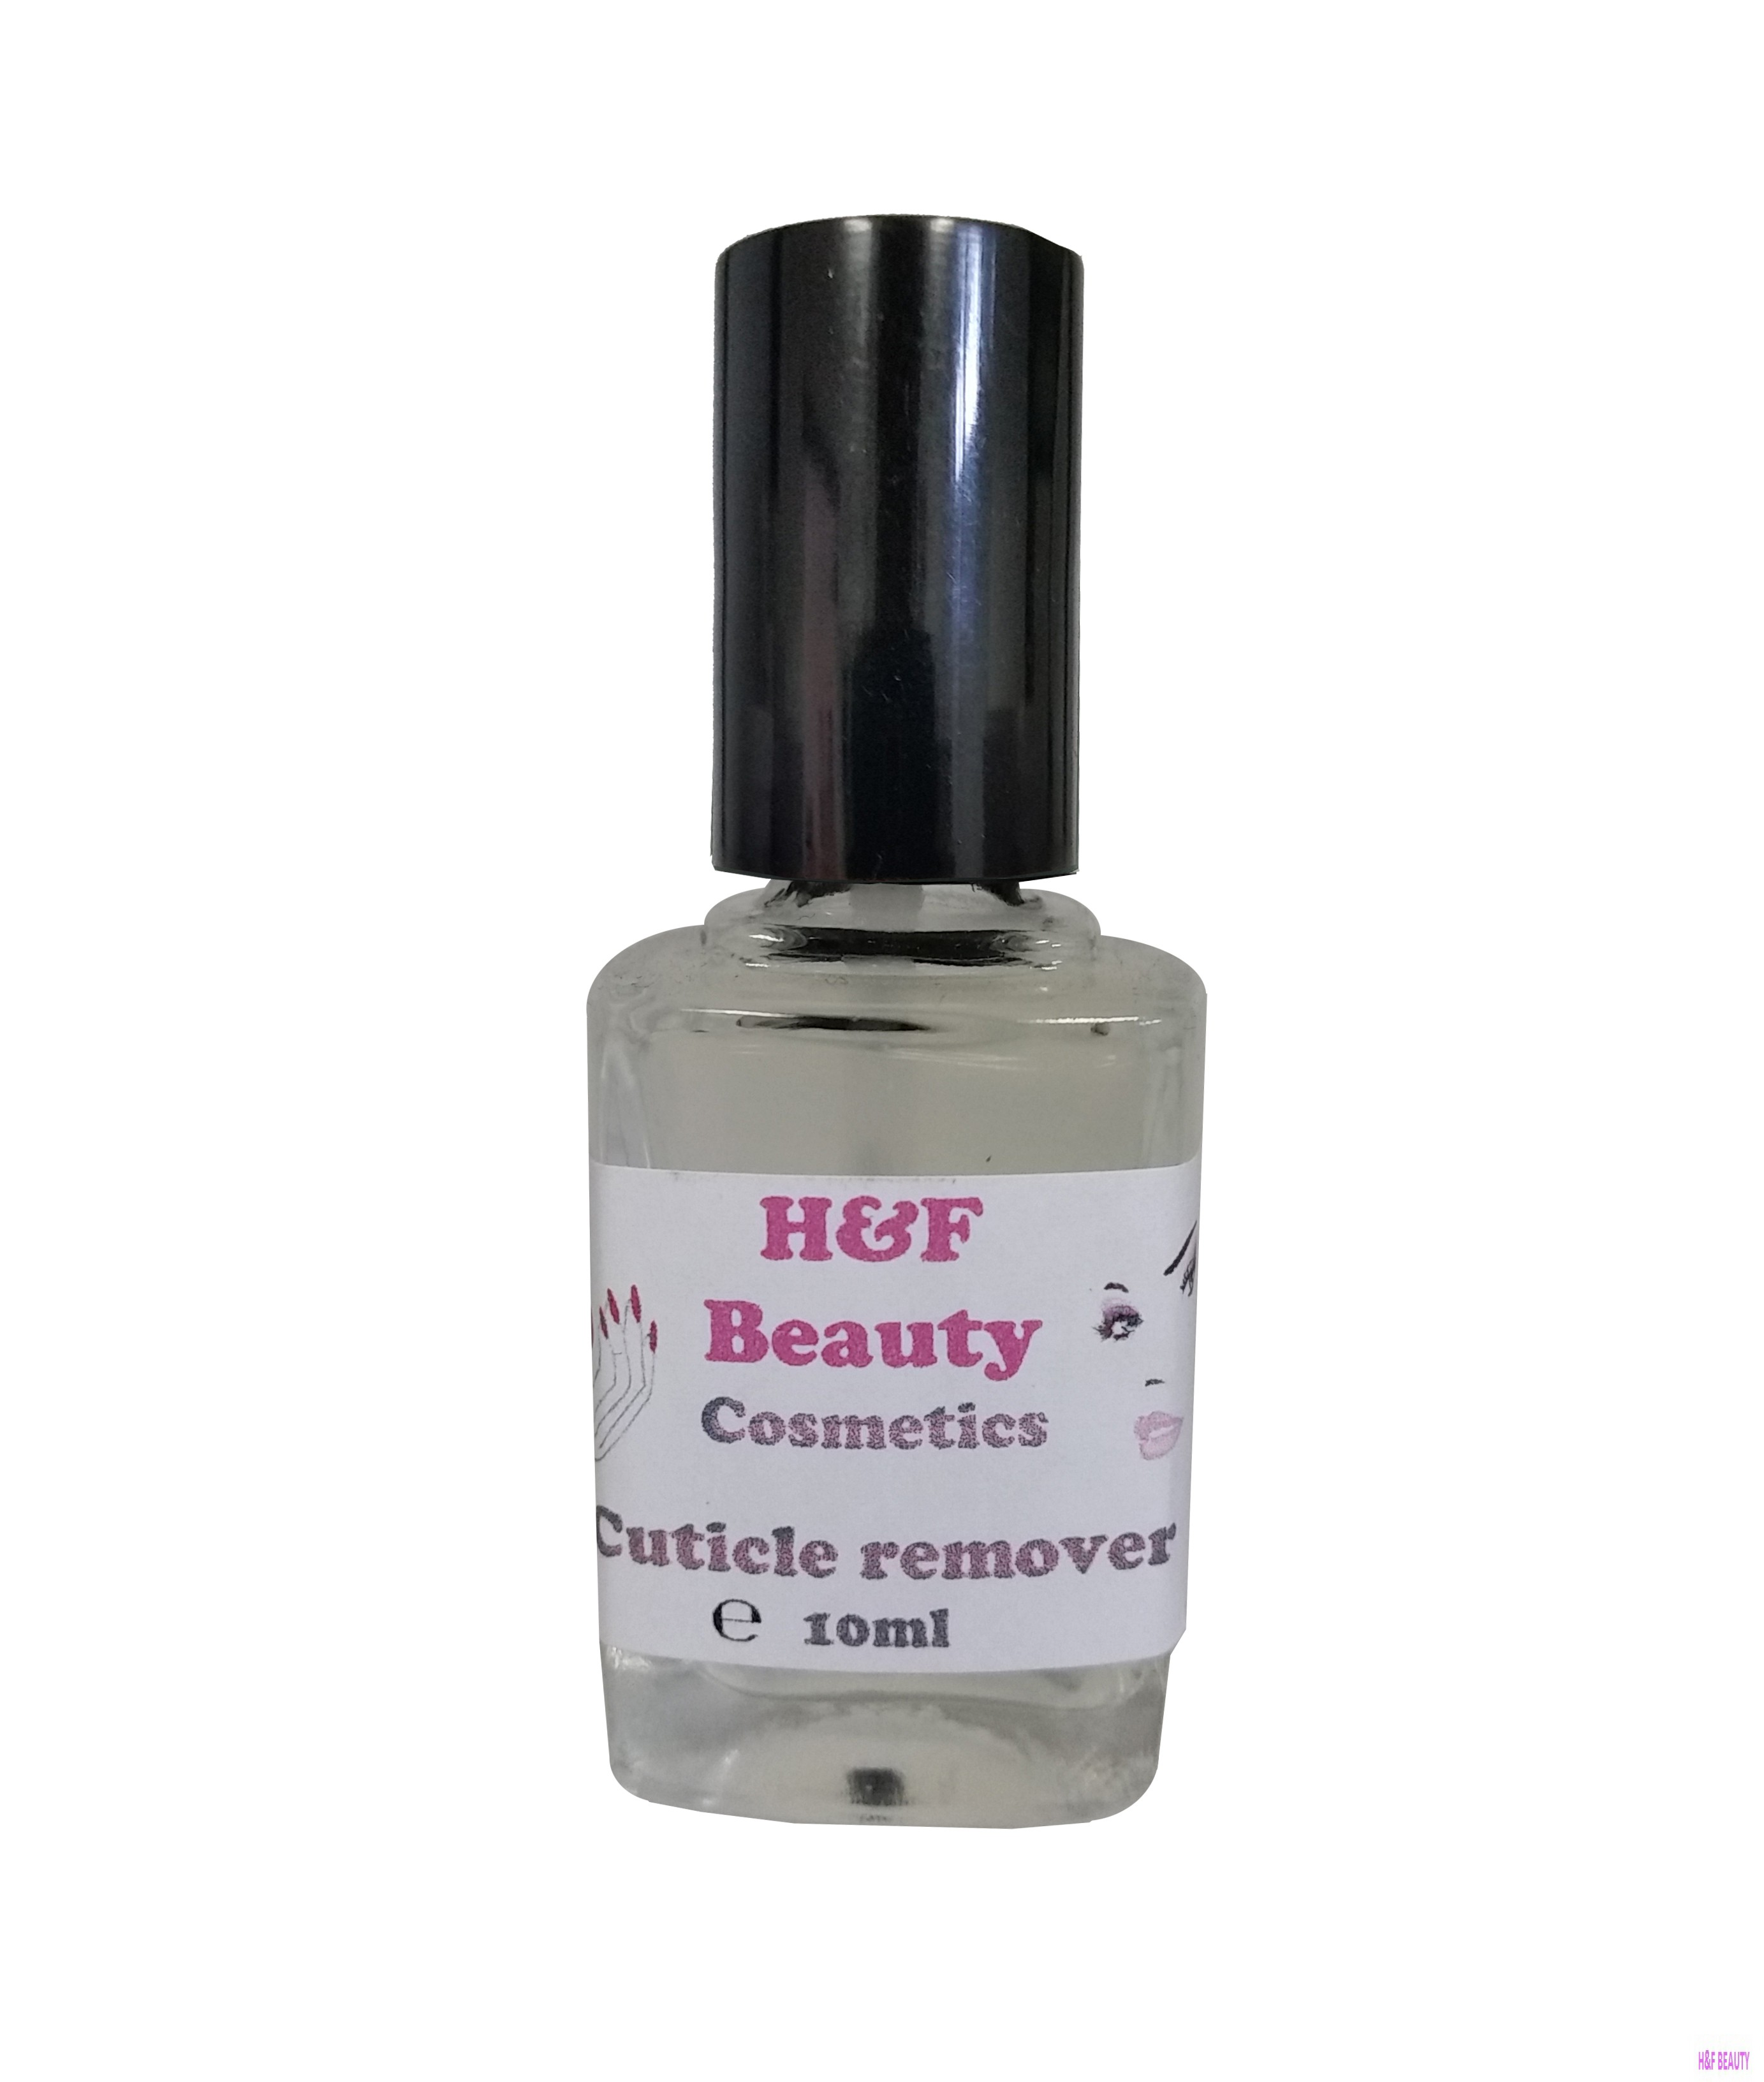 CUTTICLE REMOVER